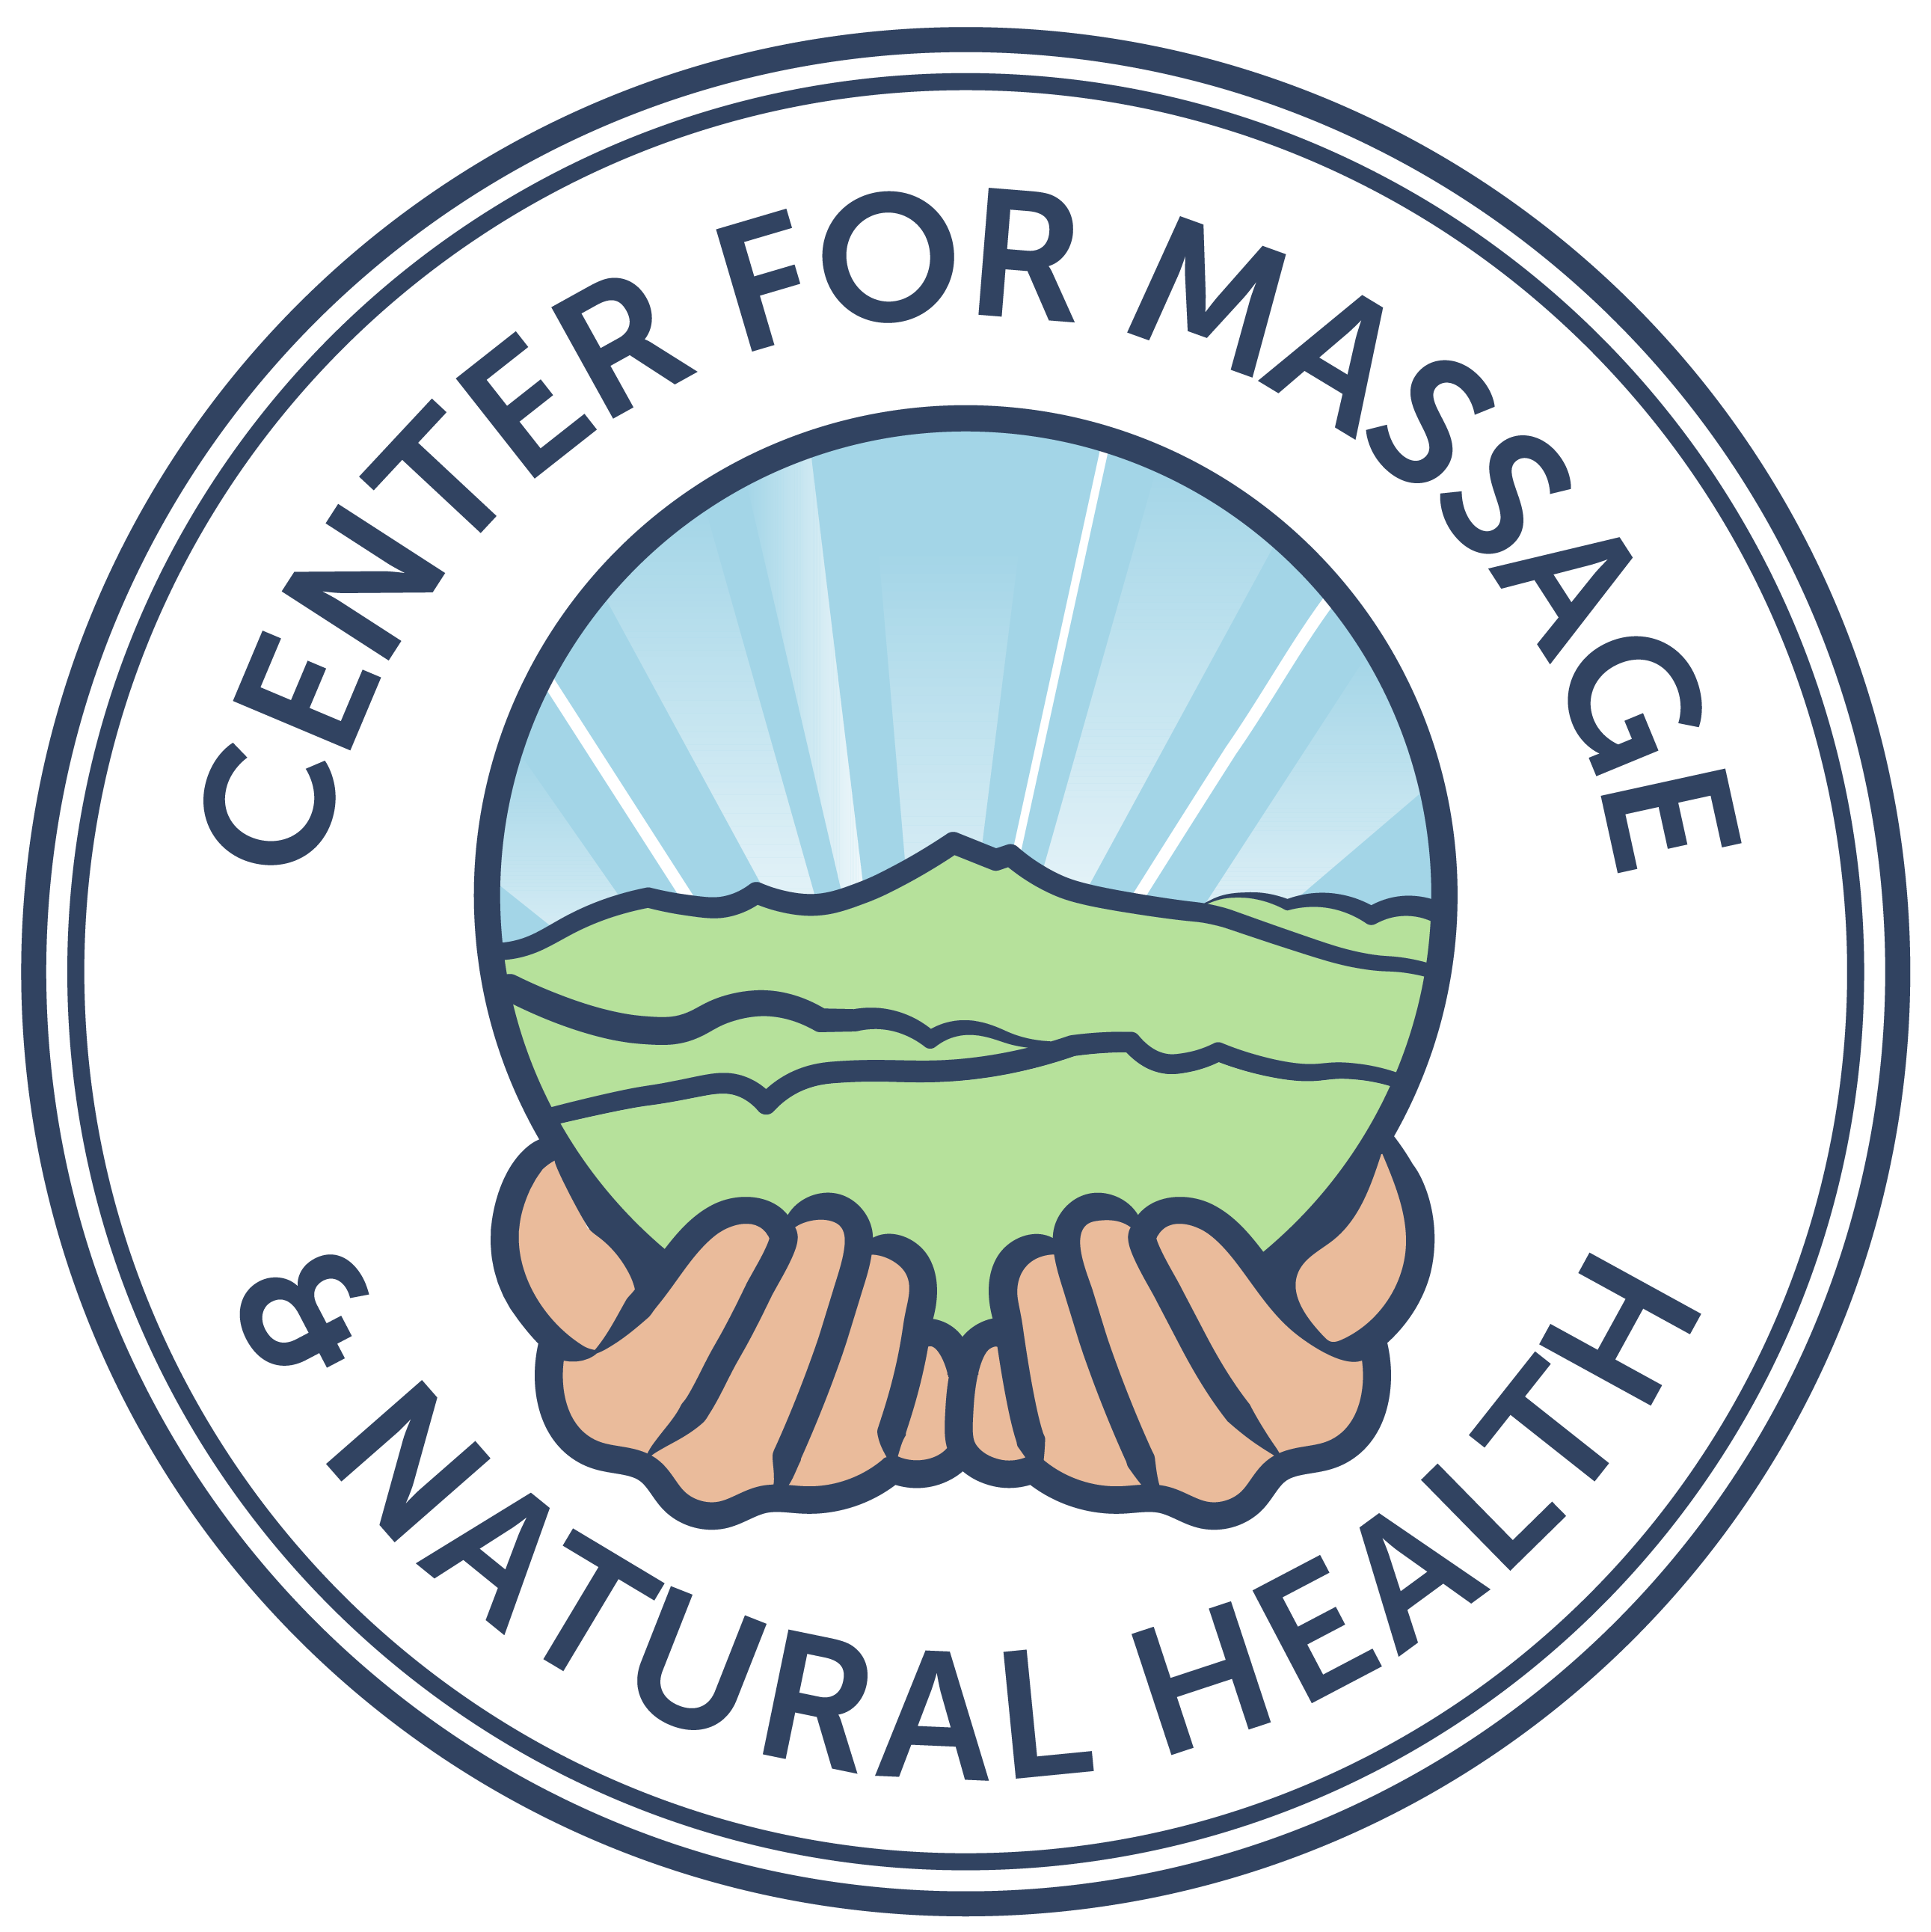 Center for Massage & Natural Health Logo